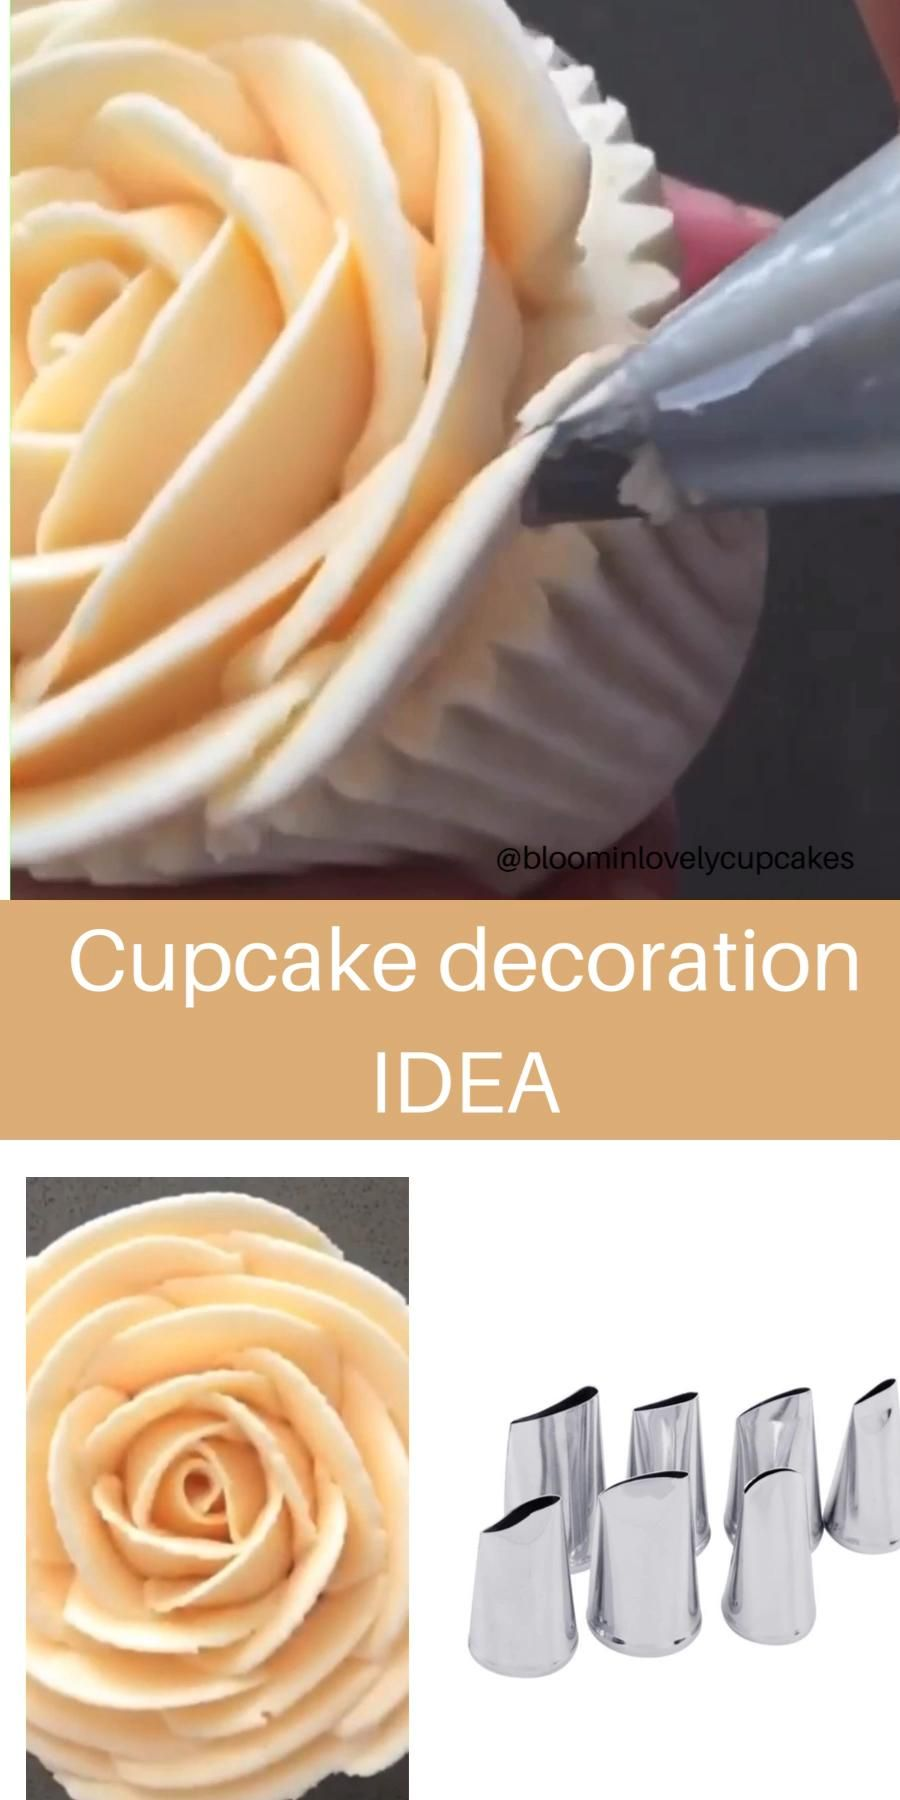 Photo of Cupcake decoration idea with piping tips